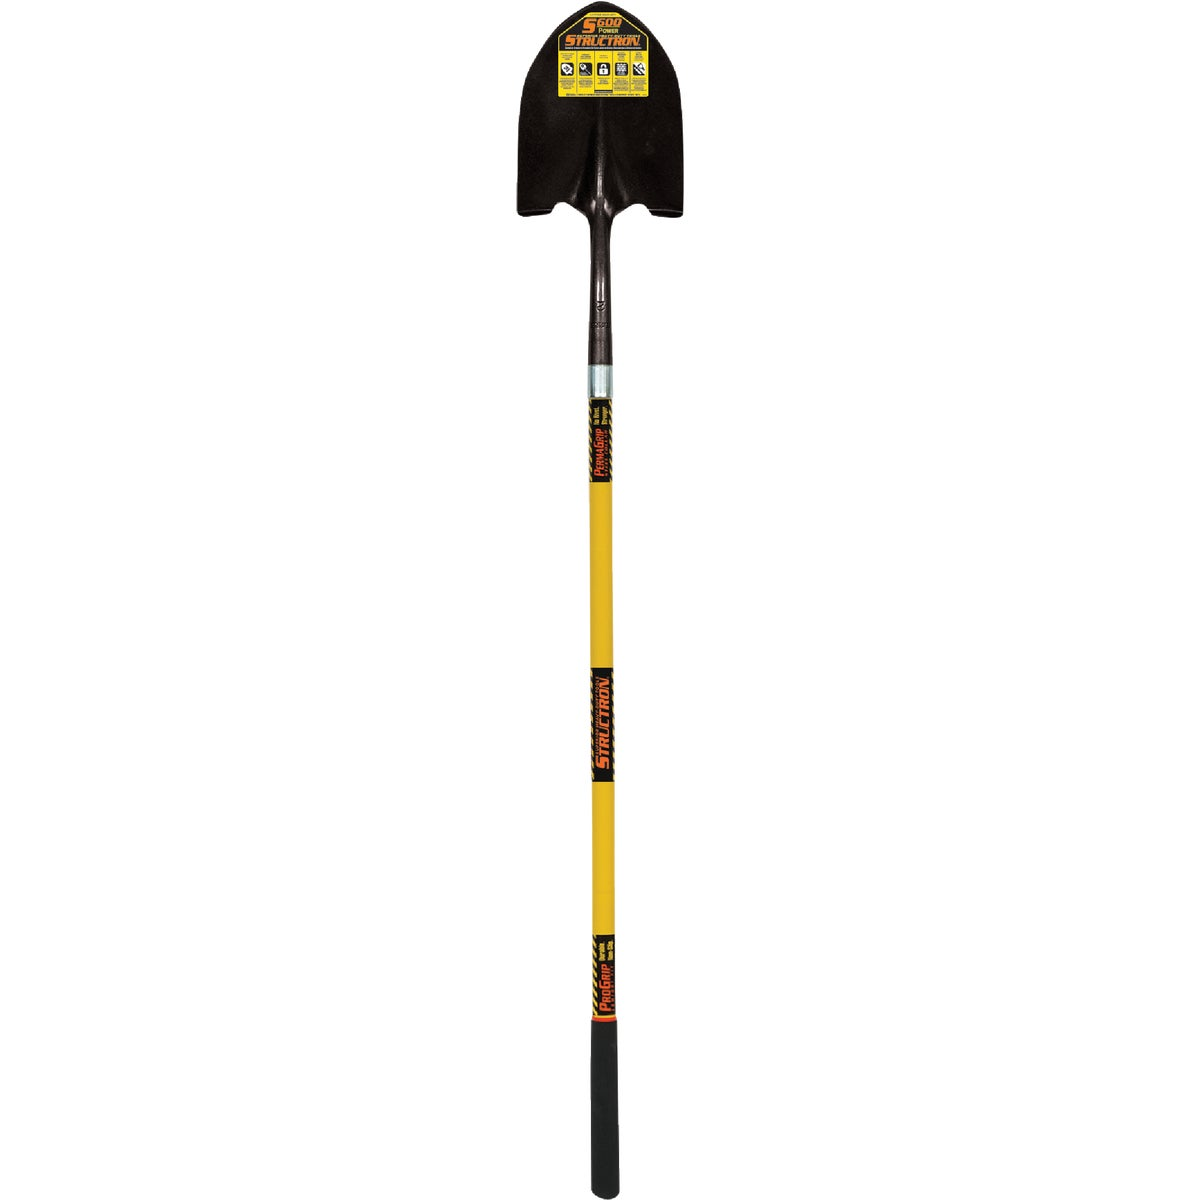 FG HDL LHRP SHOVEL - 49744 by Seymour Mfg Co